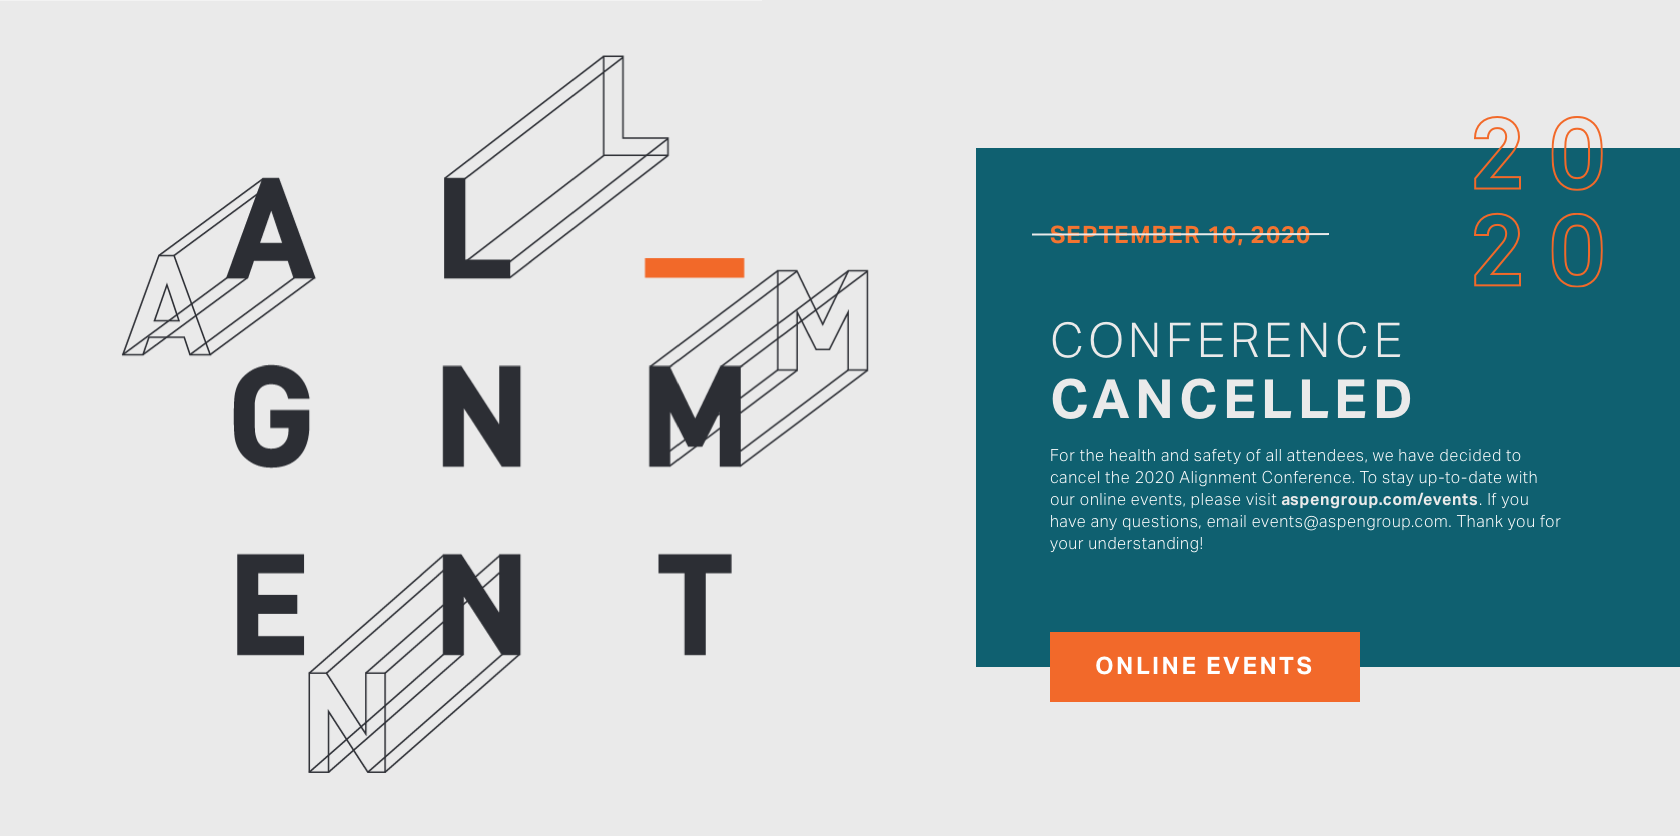 Conference Cancelled - For the health and safety of all attendees, we have decided to cancel the 2020 Alignment Conference. To stay up-to-date with our online events, please visit aspengroup.com/events. If you have any questions, email events@aspengroup.com. Thank you for your understanding!